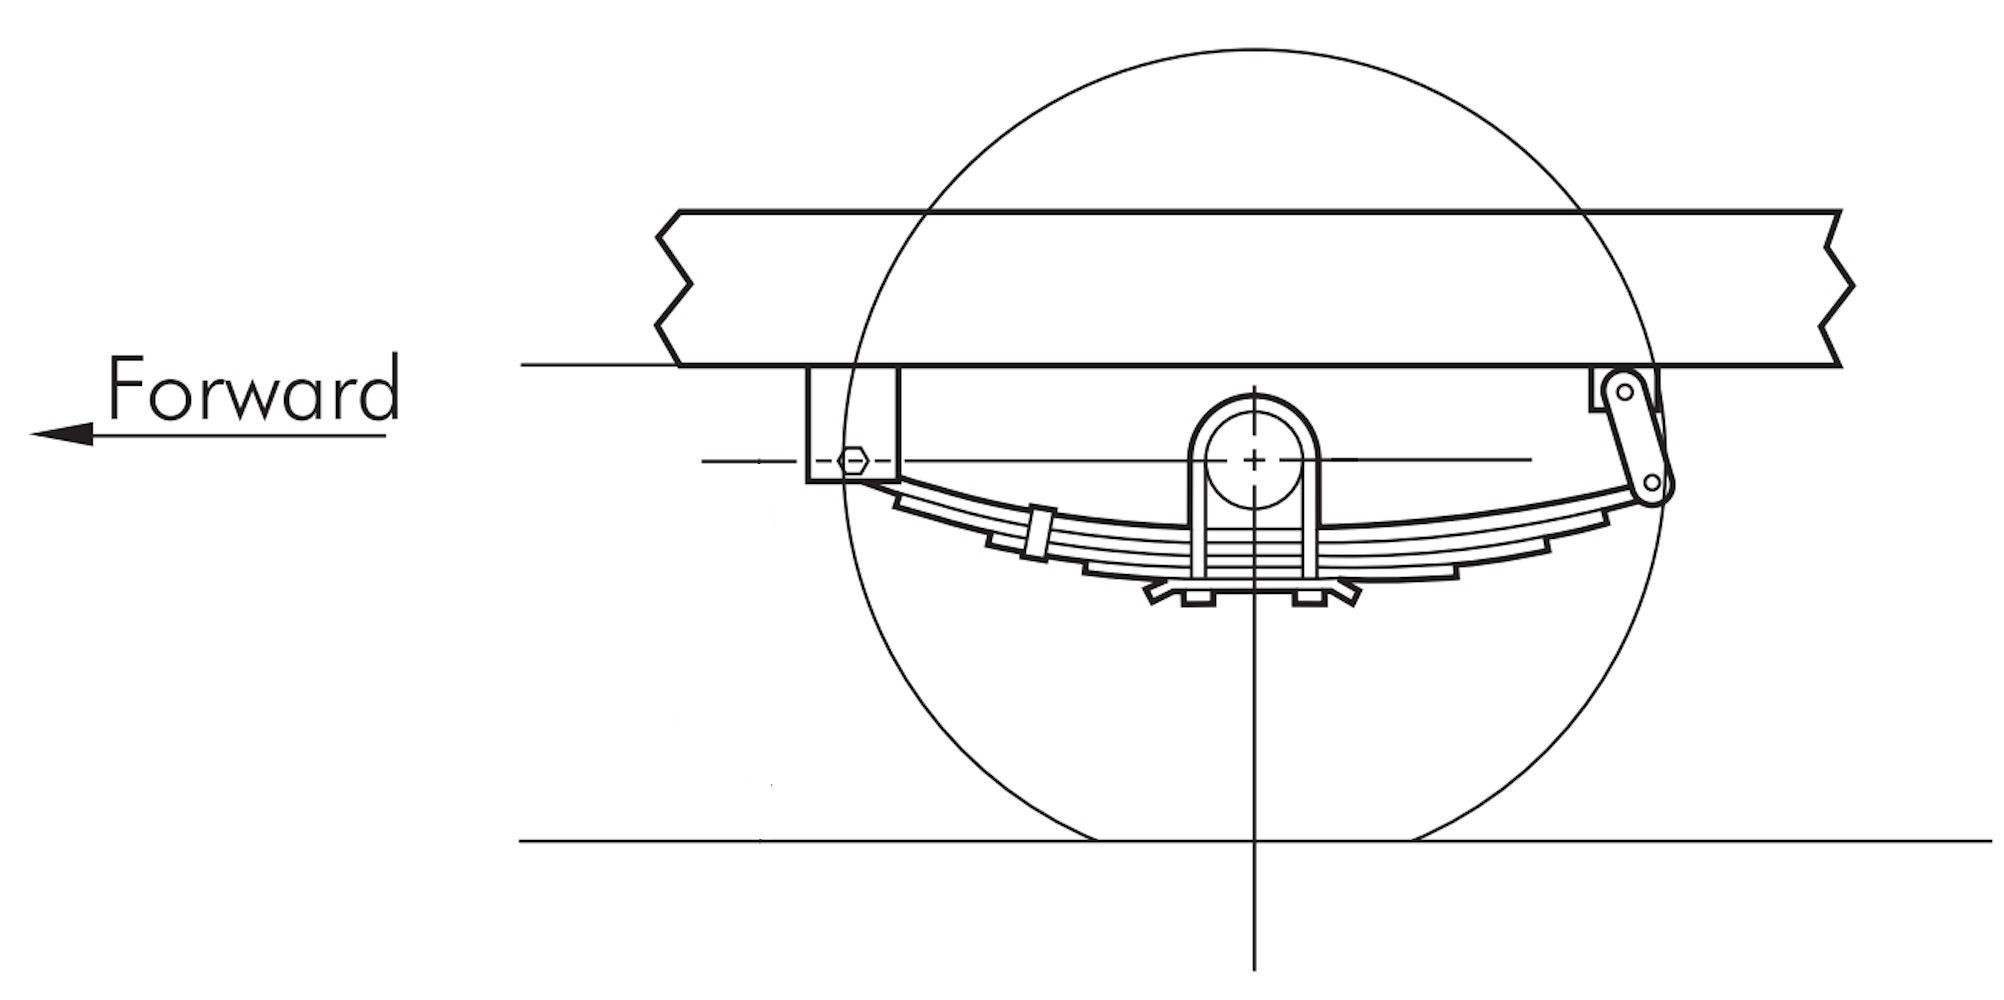 Leaf Spring Assembly Diagram